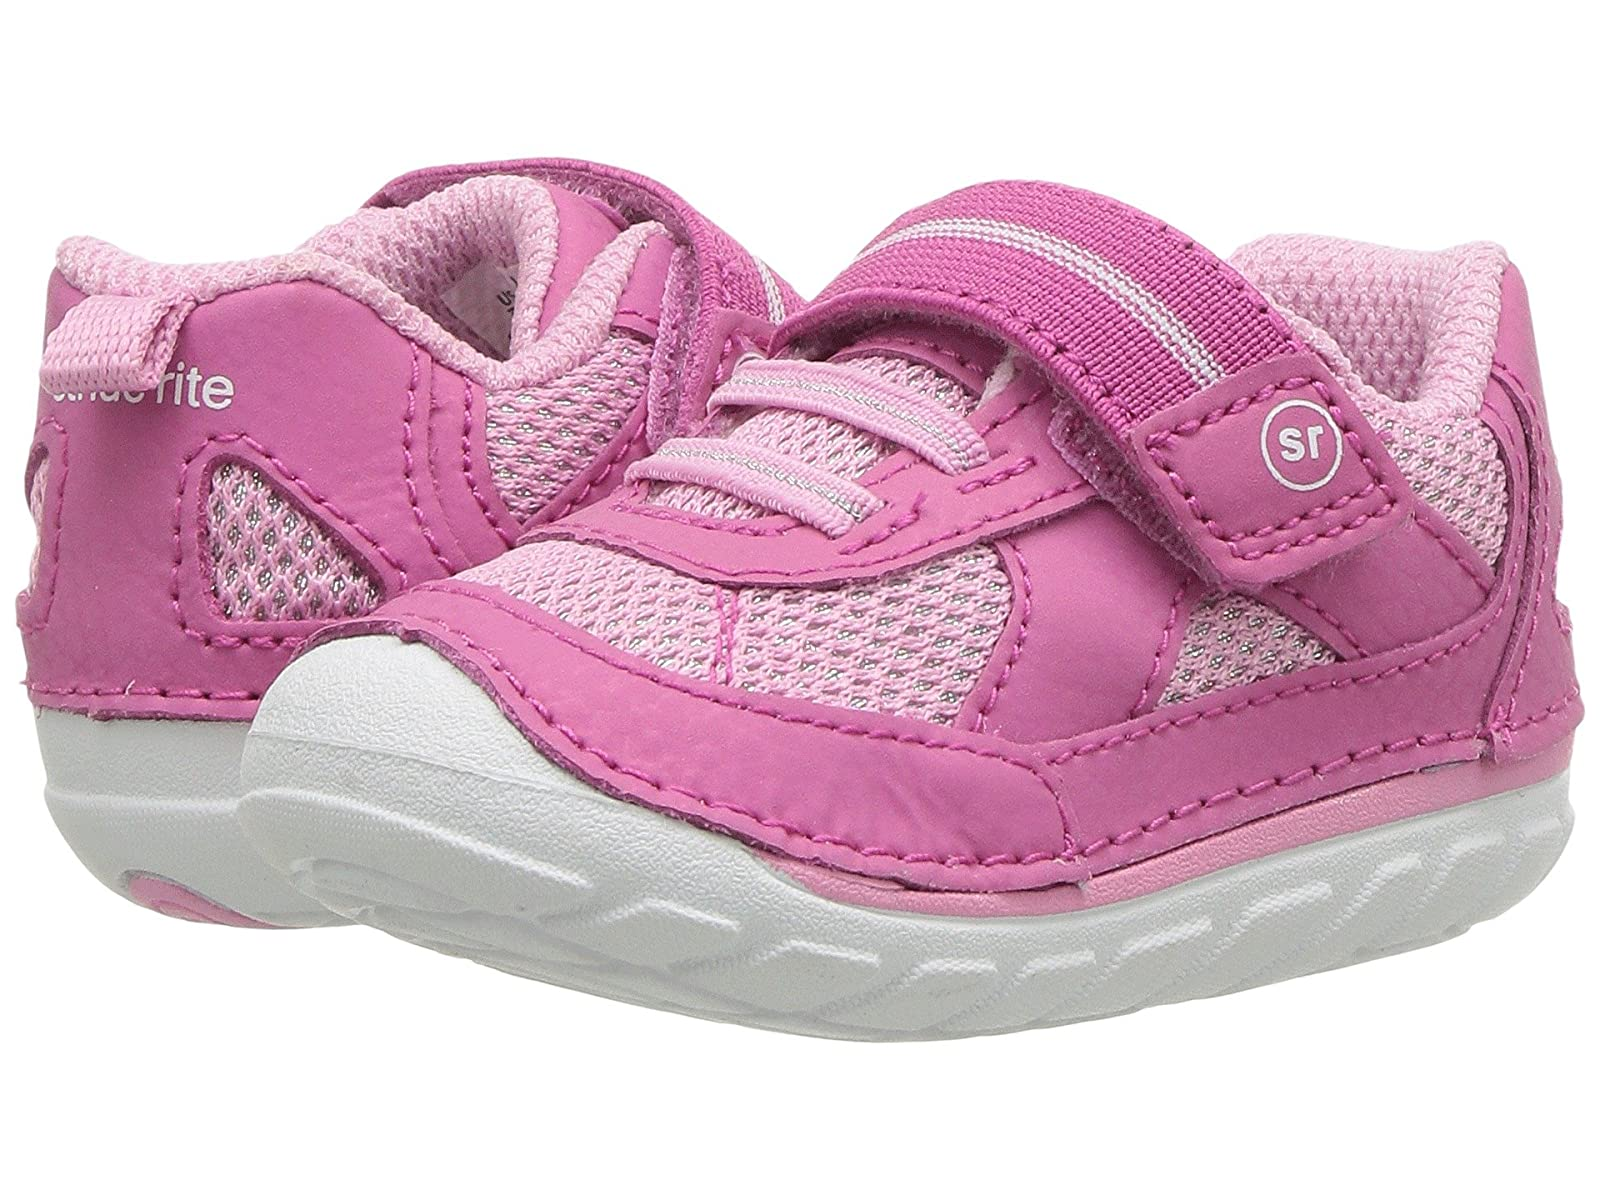 Stride Rite SM Jamie delivery (Infant/Toddler)-Fast delivery Jamie -Man's/Woman's f72cf0